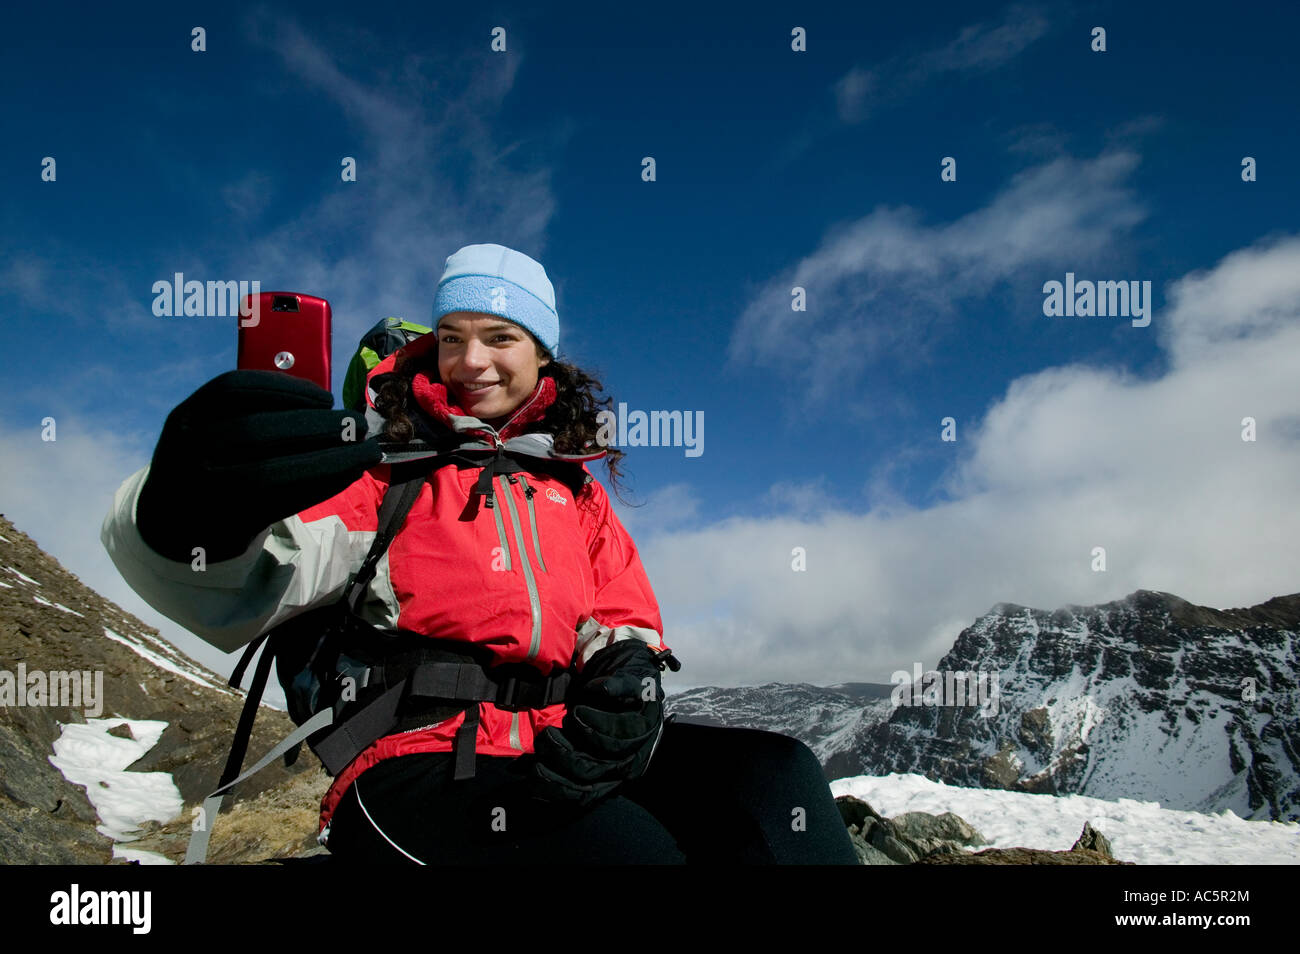 Woman taking a picture on a red camera phone in the mountains - Stock Image